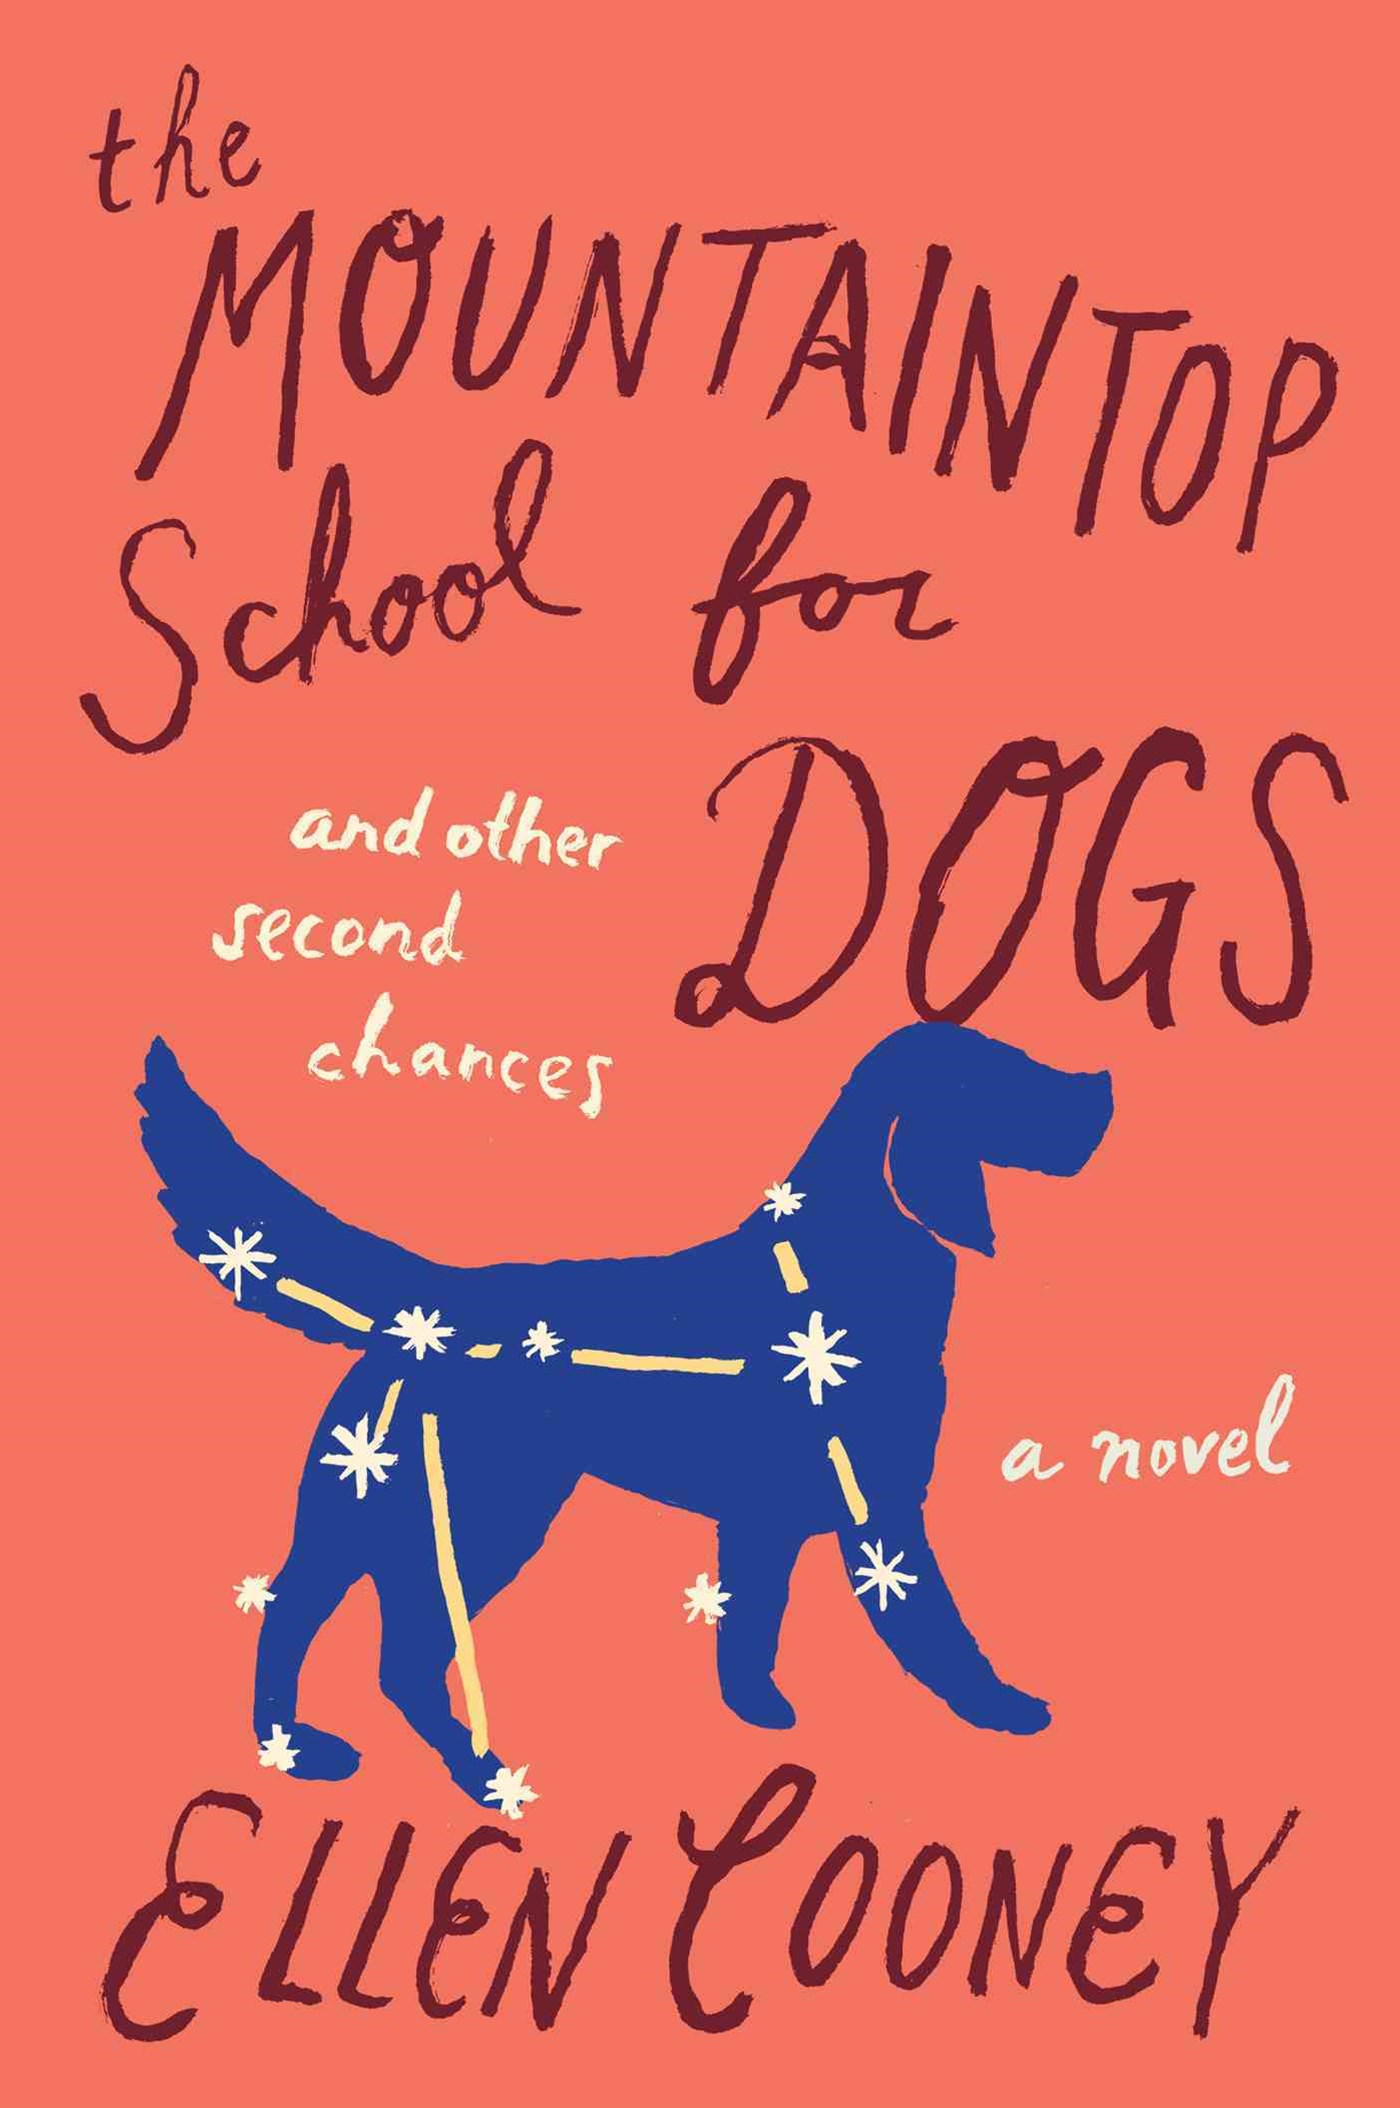 Mountaintop School for Dogs and Other Second Chances